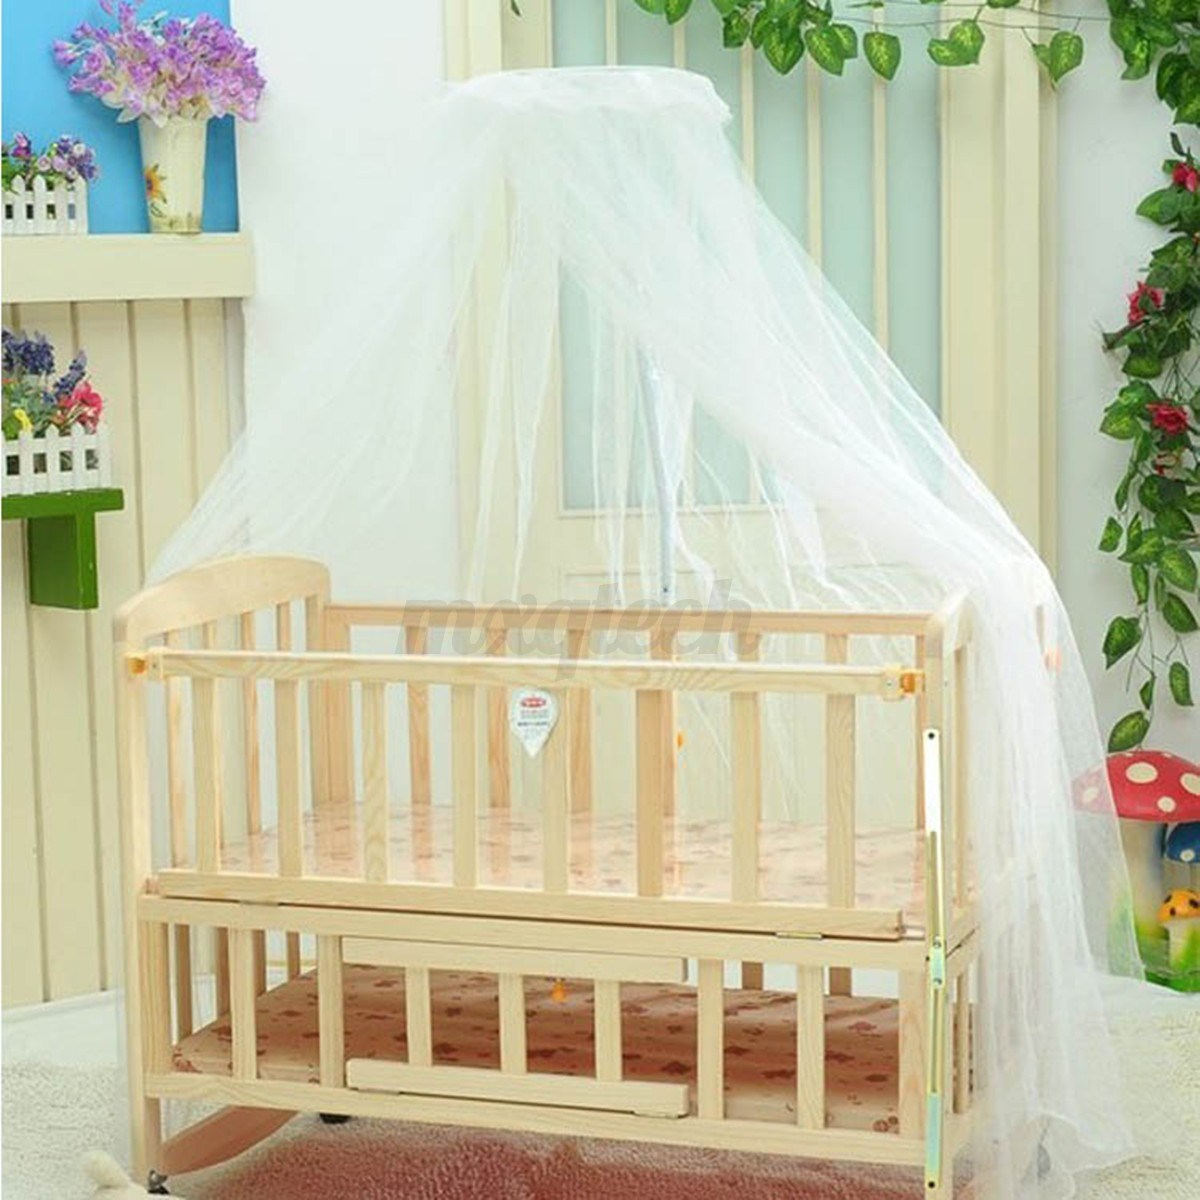 Round dome baby bed mosquito mesh curtain net for toddler for Round bed for kids